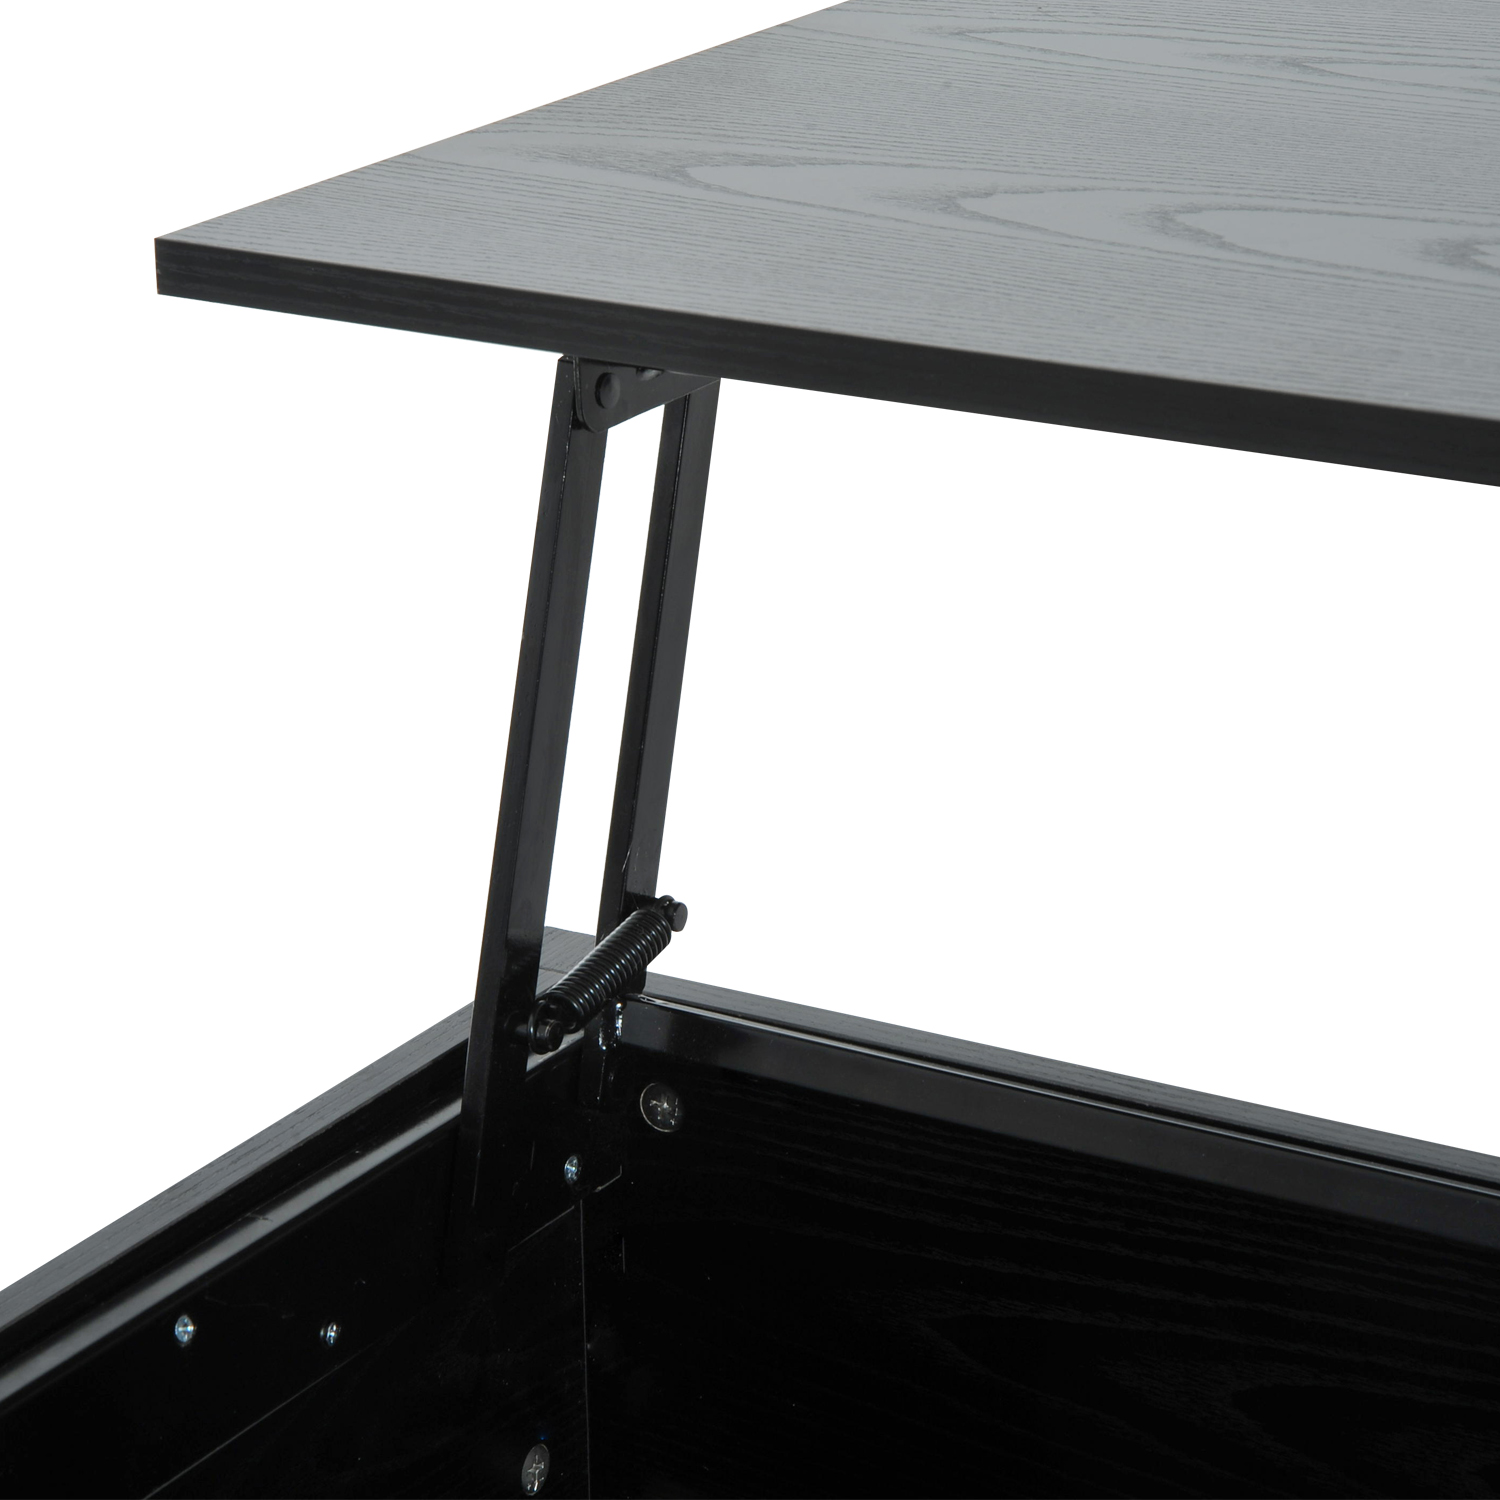 39-Modern-Lift-Top-Coffee-Table-Floating-Retractable-Lift-Top-Hidden-Storage thumbnail 8